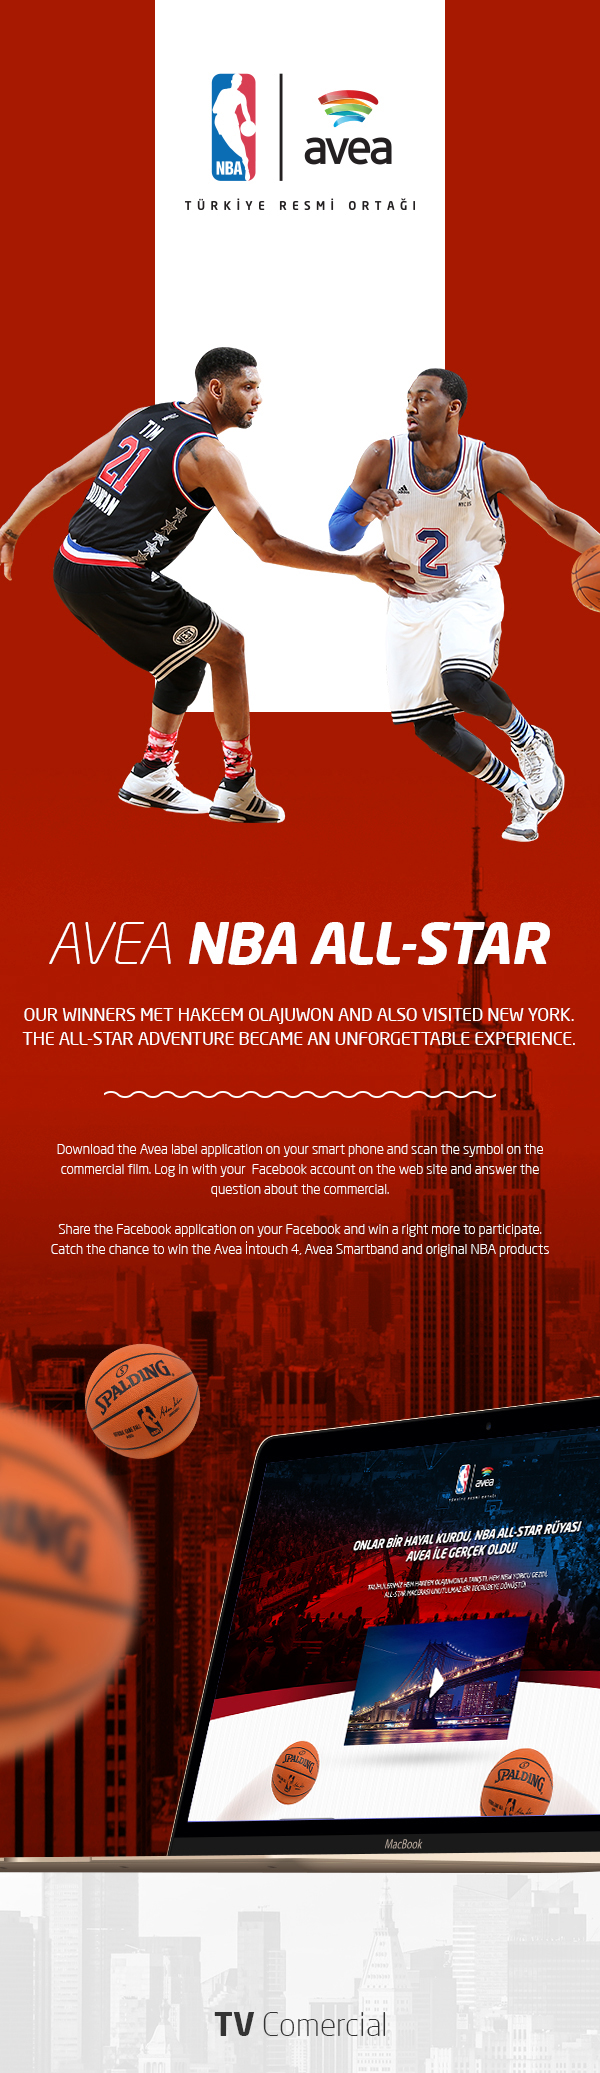 Avea nba all star web design mobile site on behance biocorpaavc Image collections